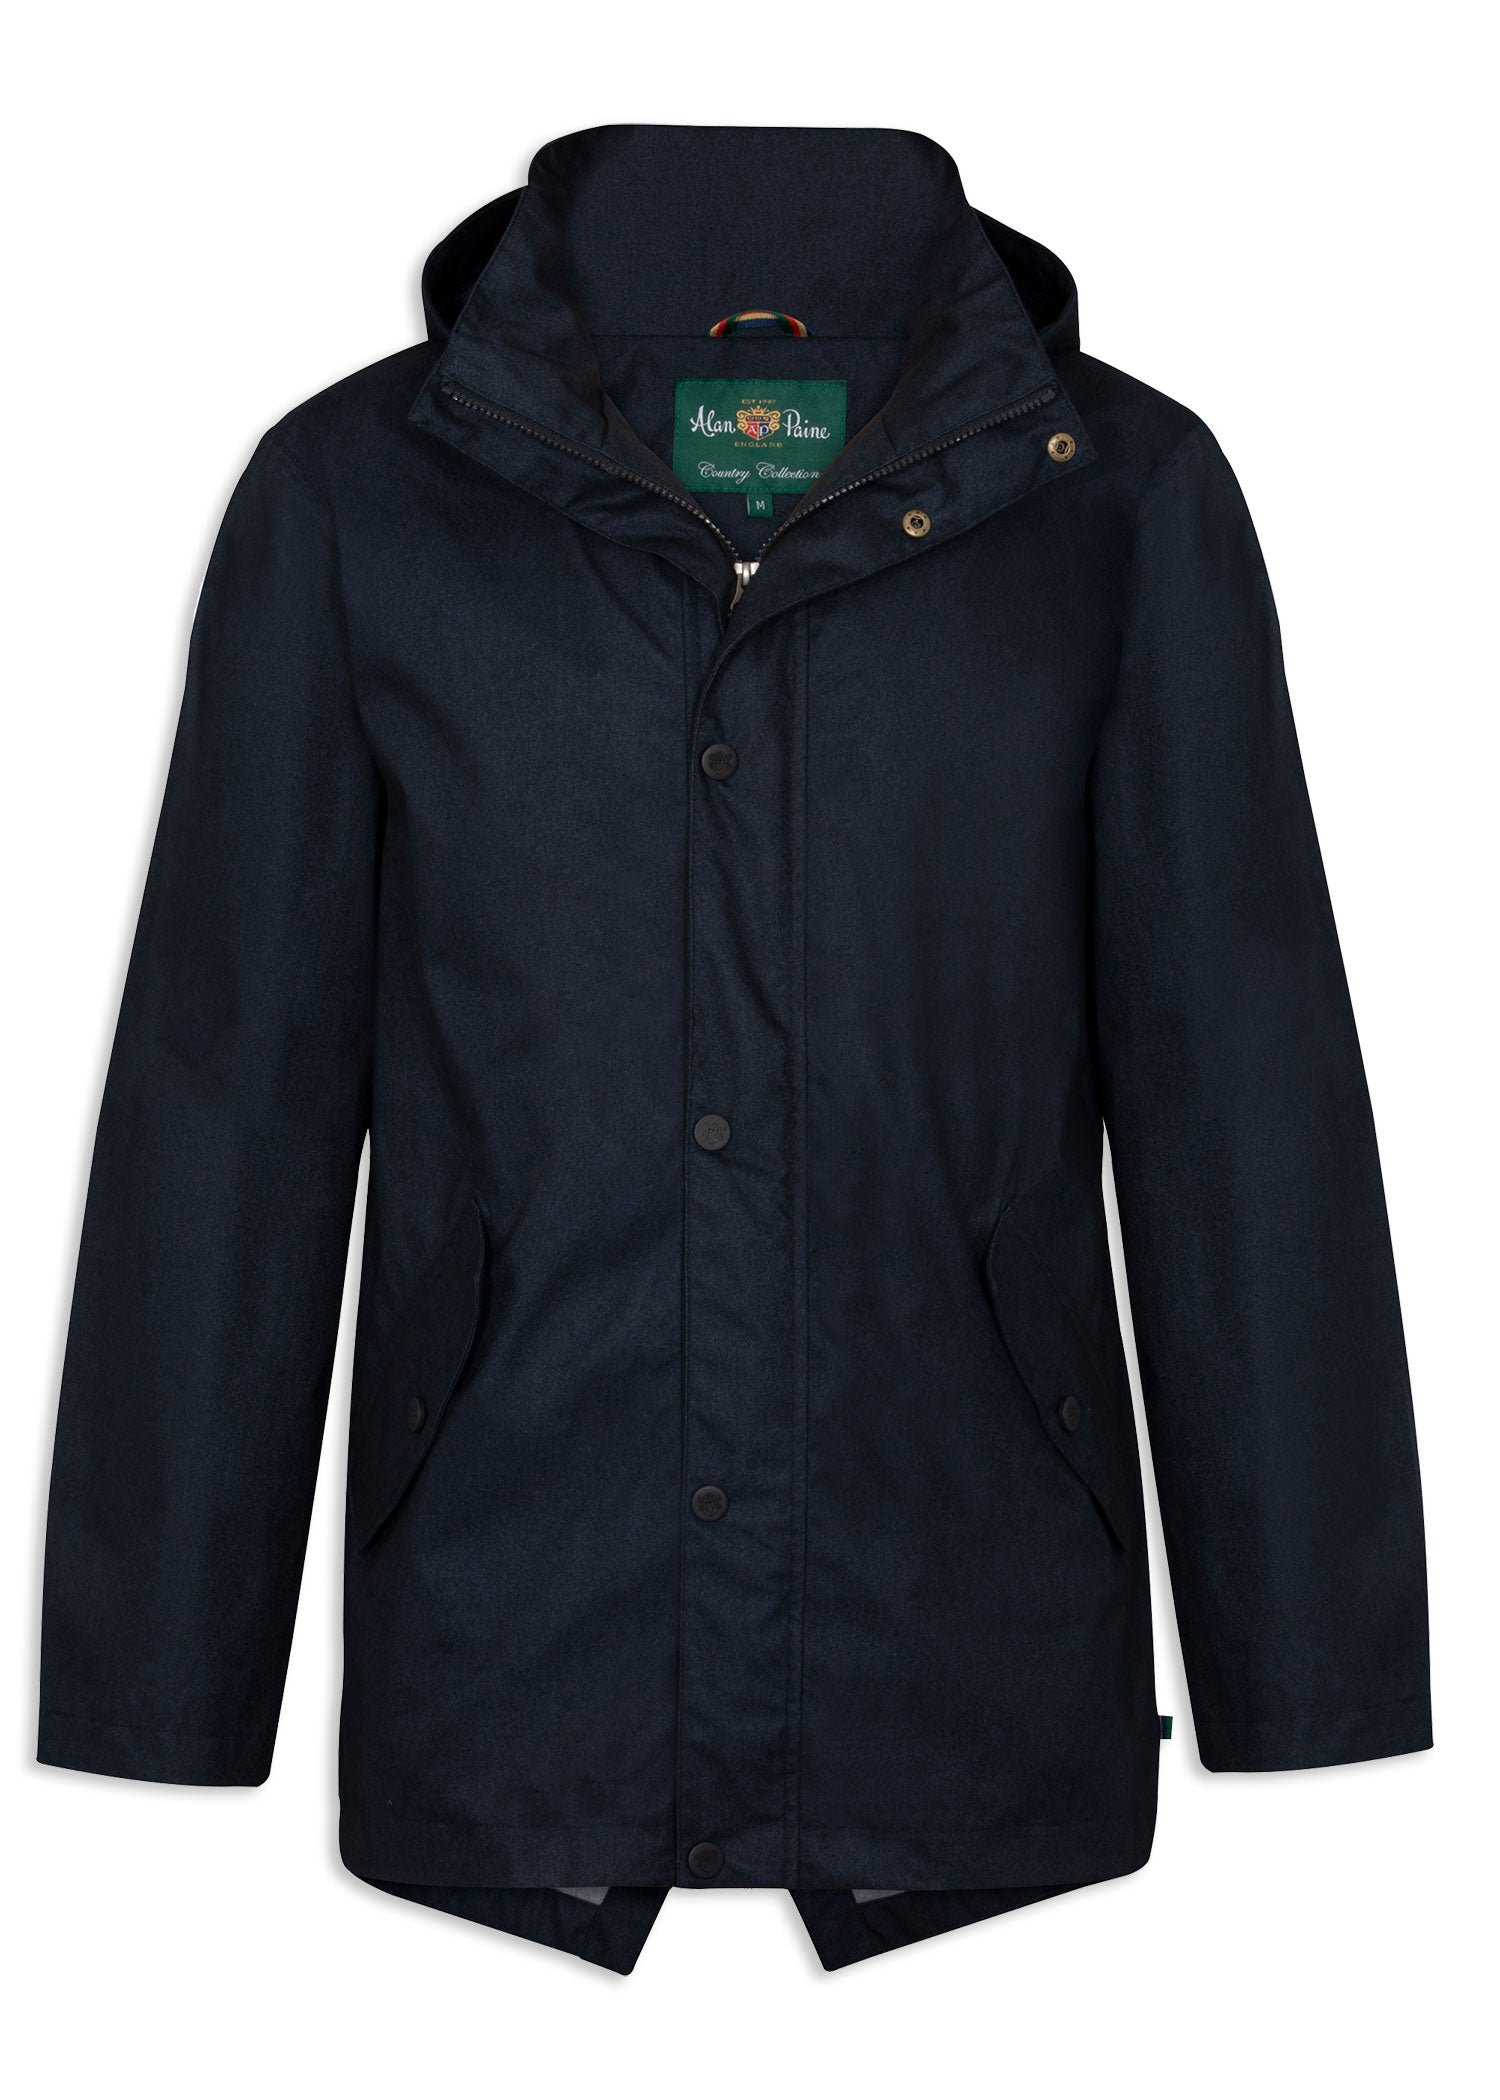 Navy BLue Alan Paine Fernley Waterproof Parka